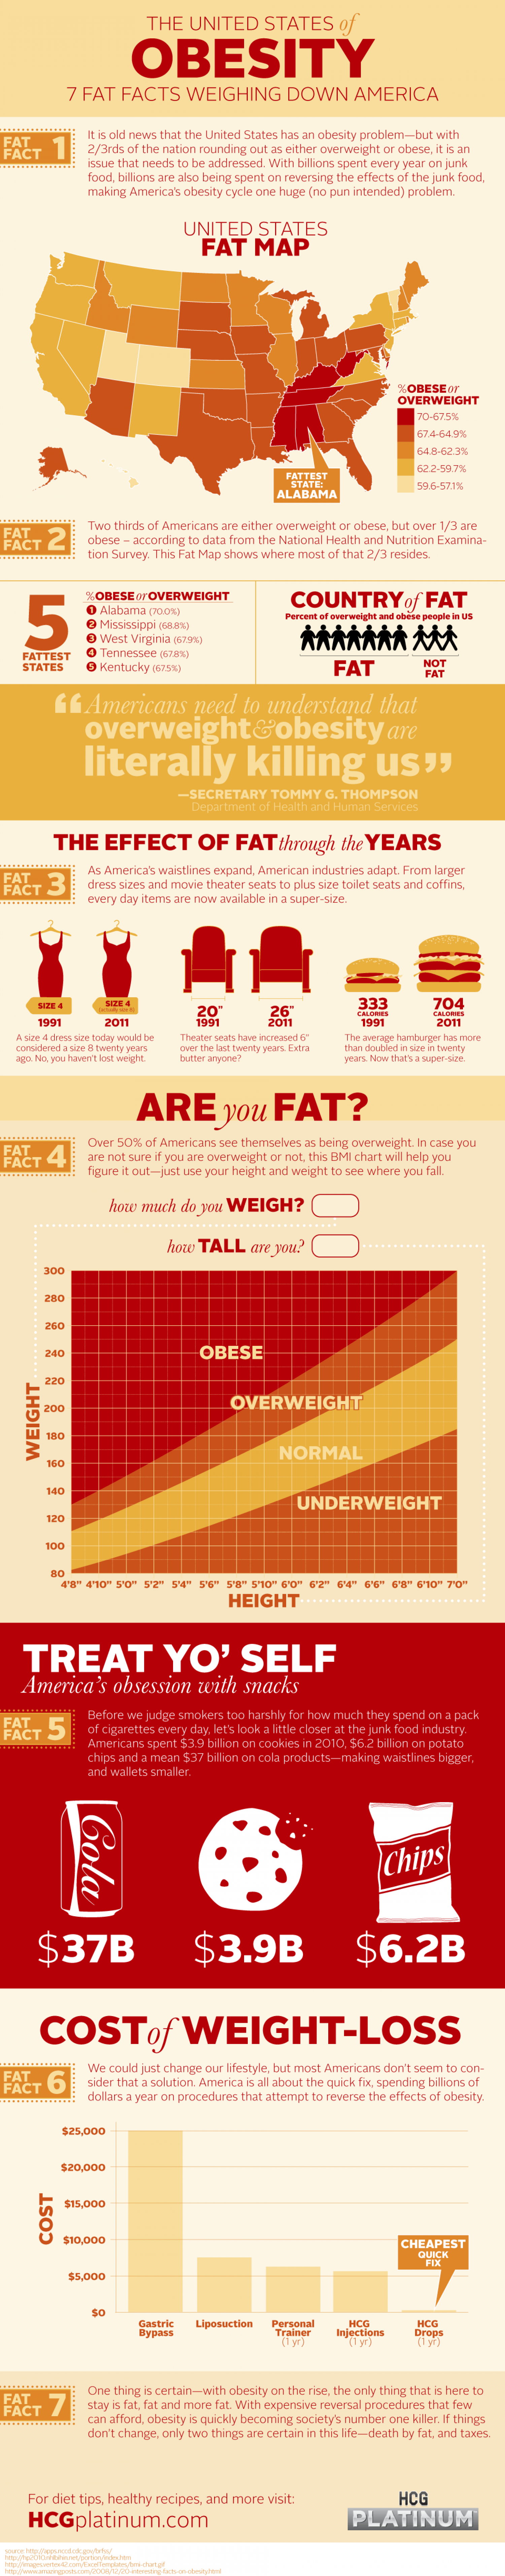 The United States of Obesity Infographic